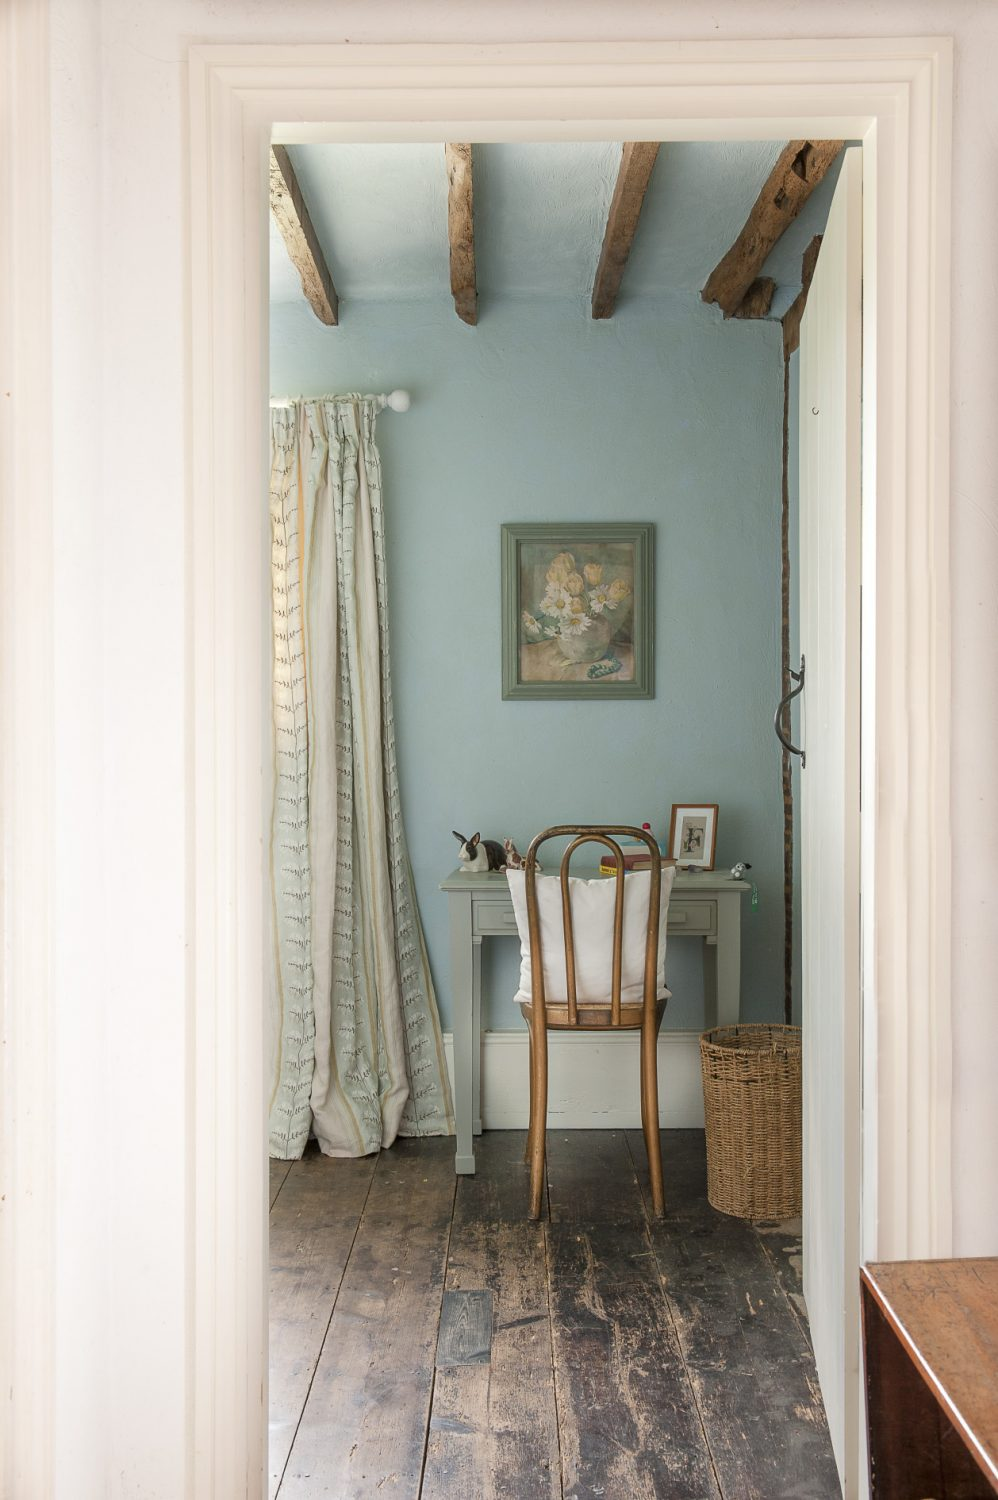 Daughter Flora's room is painted a tranquil chalky blue